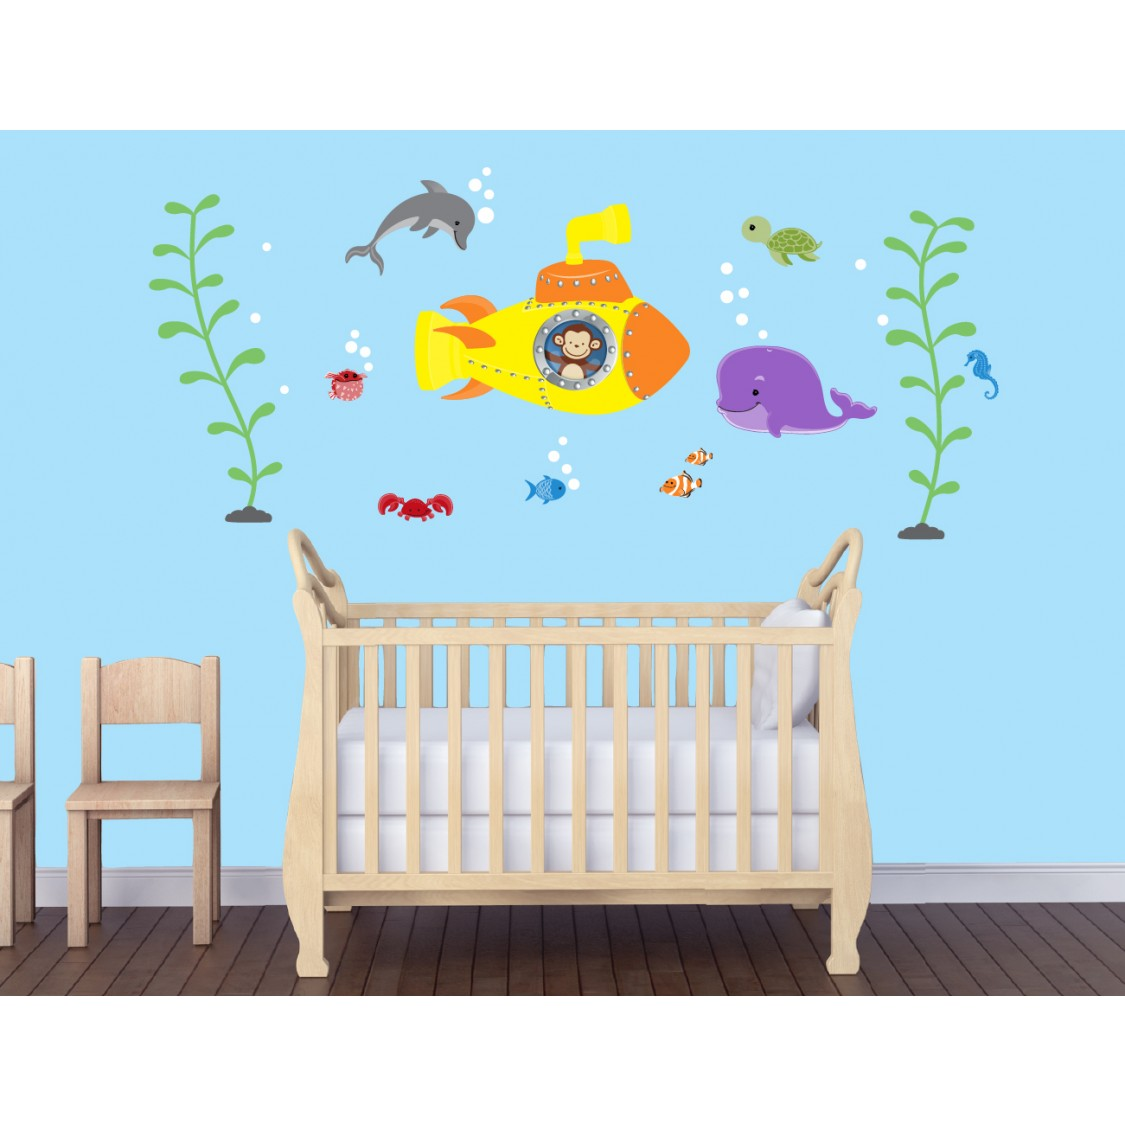 Ocean Wall Mural bedroom wall stickers with ocean wall mural for baby room